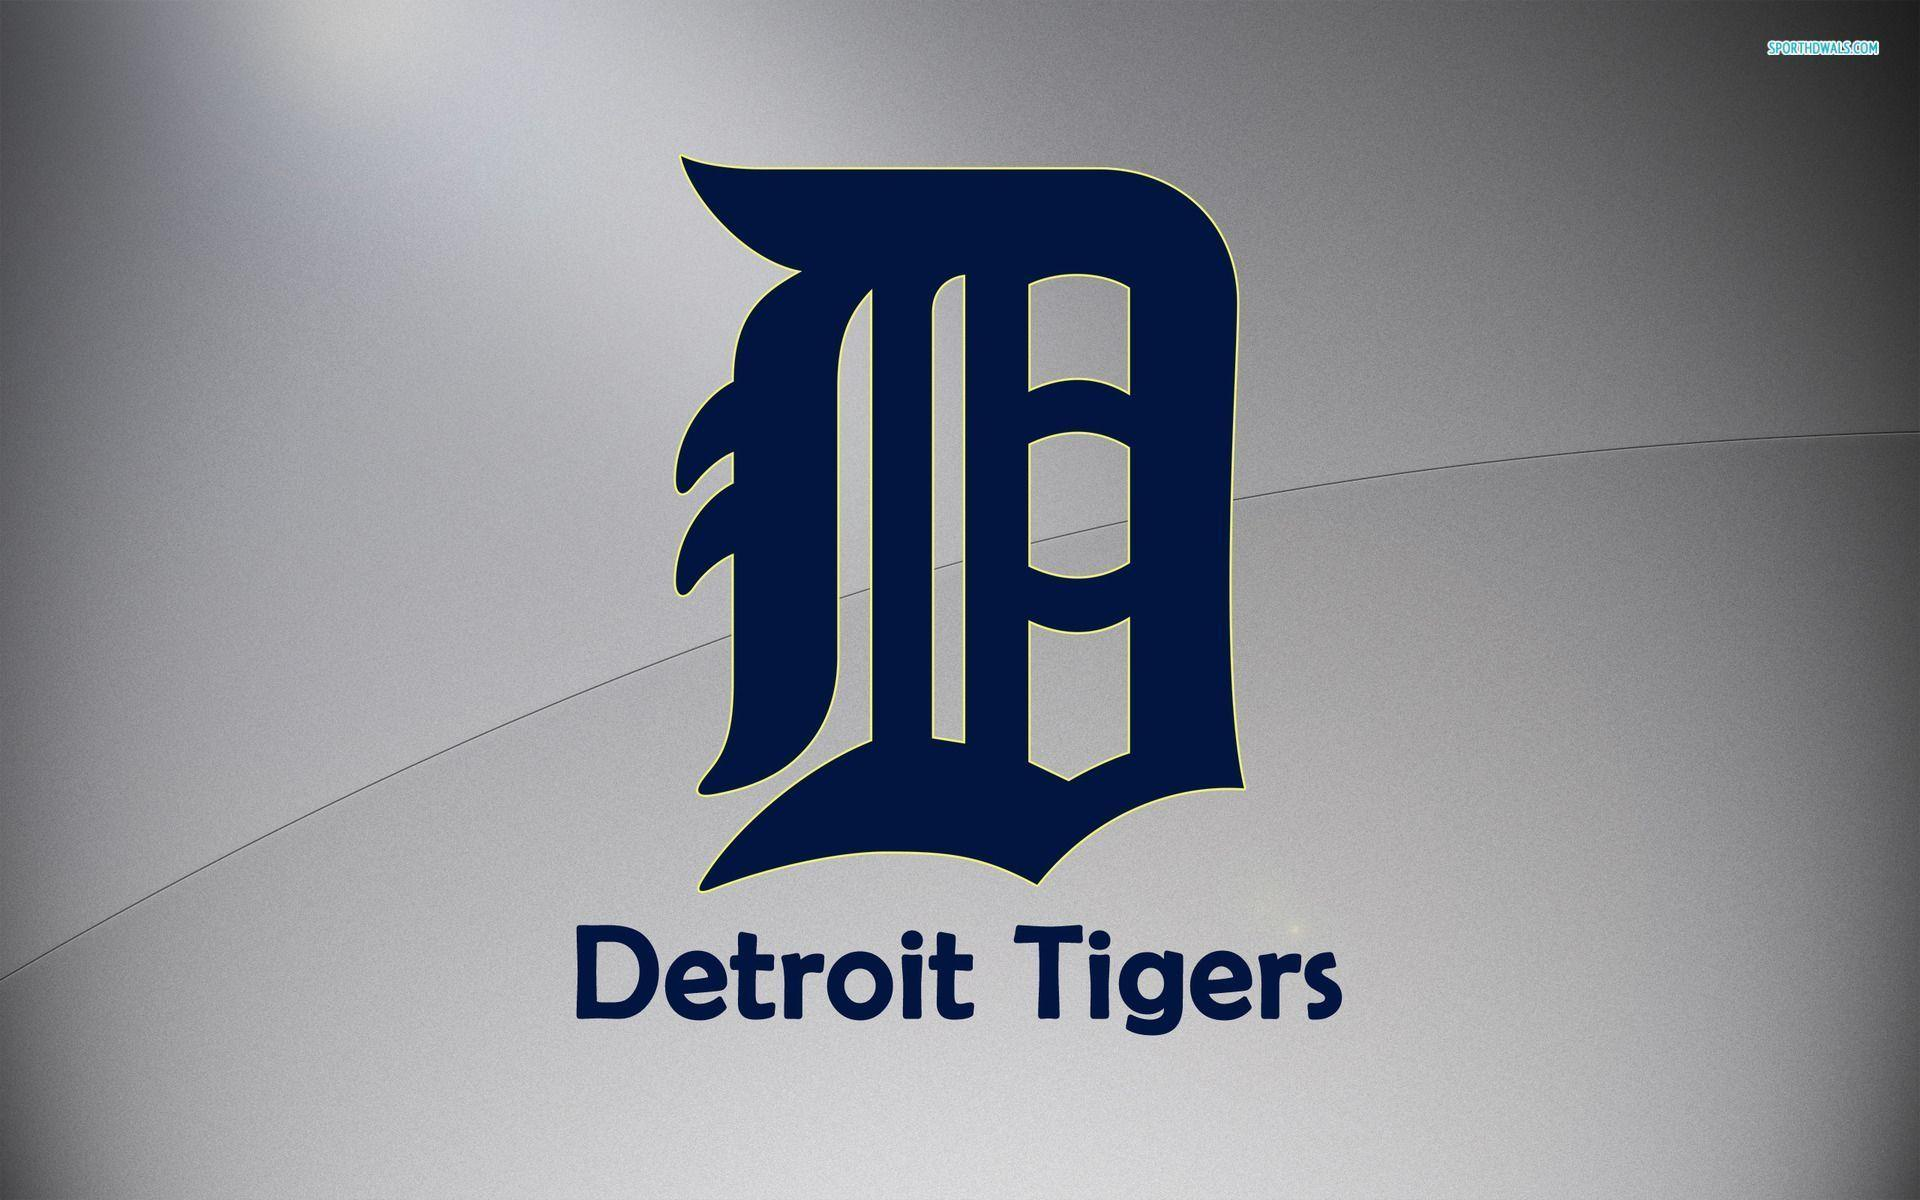 Detroit Tigers Wallpapers 2015 Schedule Wallpaper Cave